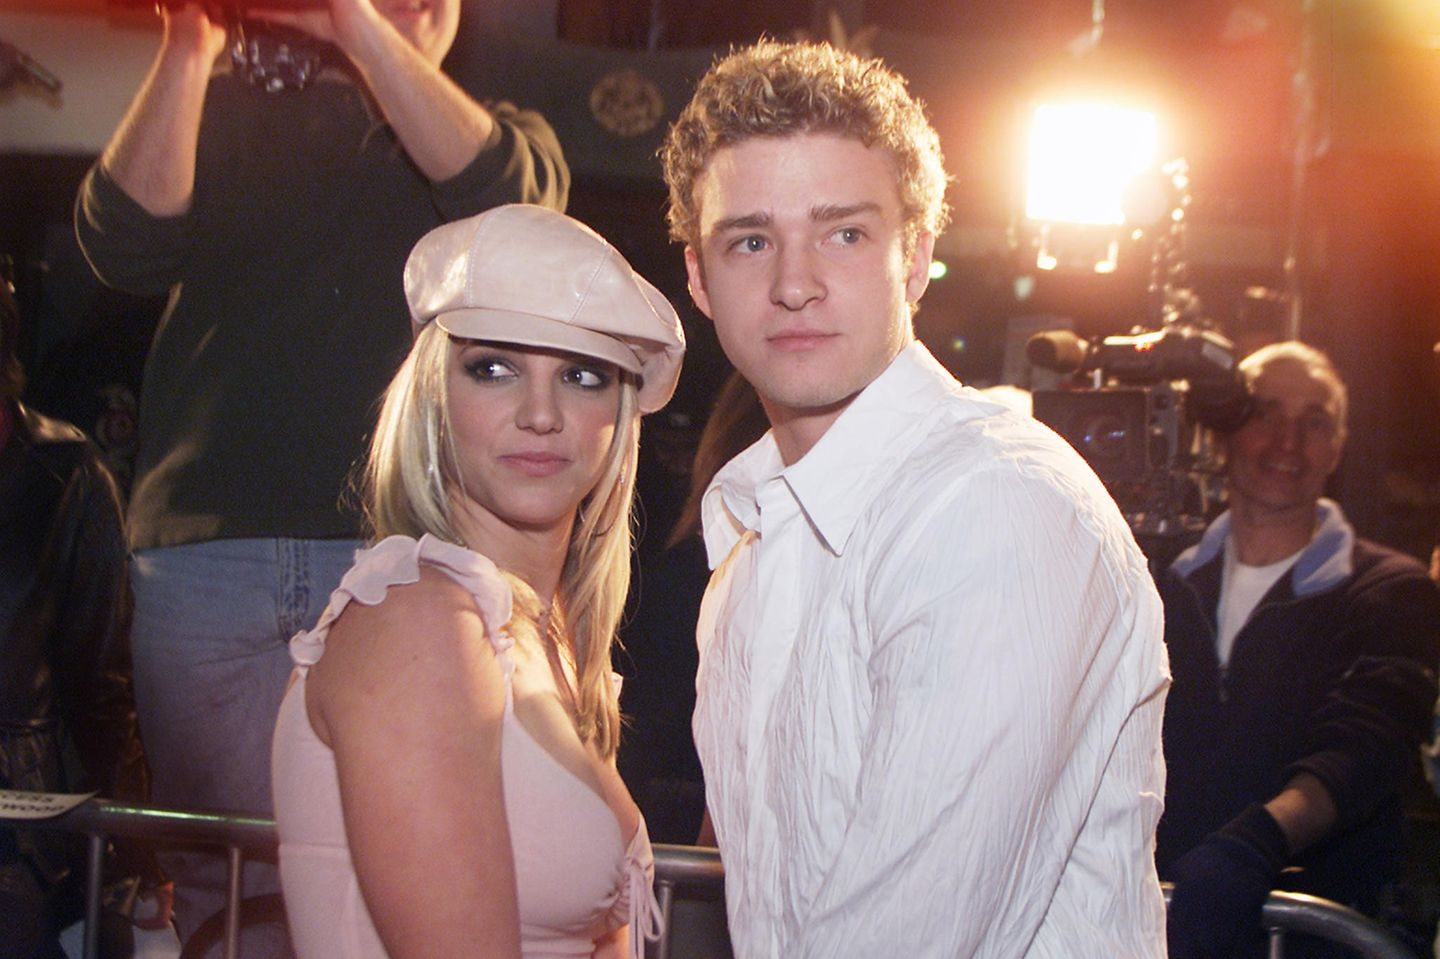 Britney Spears und Justin Timberlake 2002 in Hollywood.